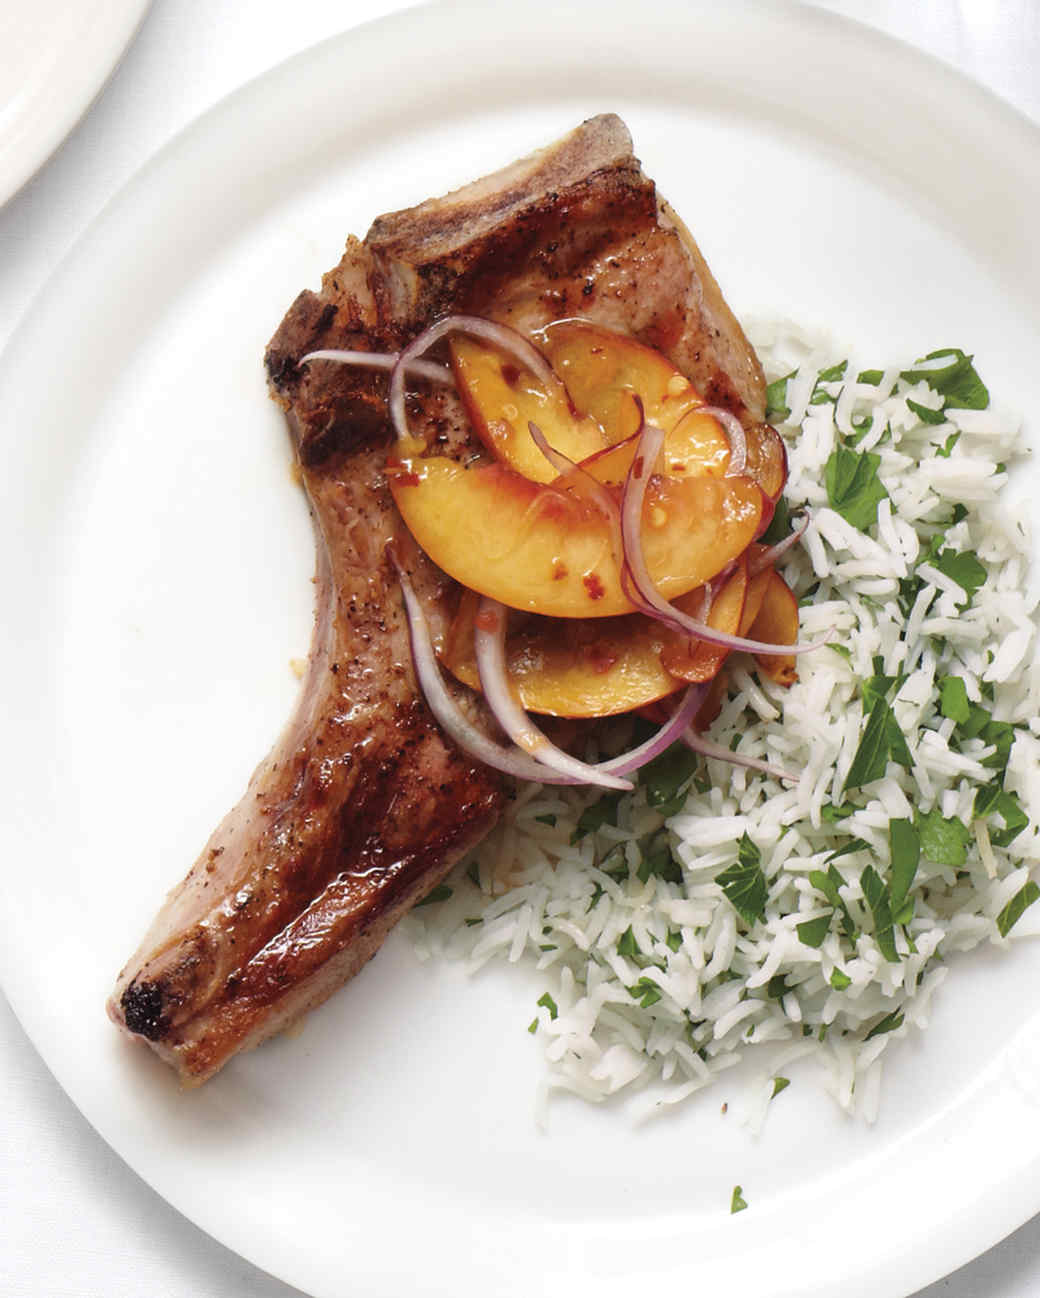 grilled-pork-chops-with-peach-relish-and-herb-rice-0615-d107287-0615.jpg